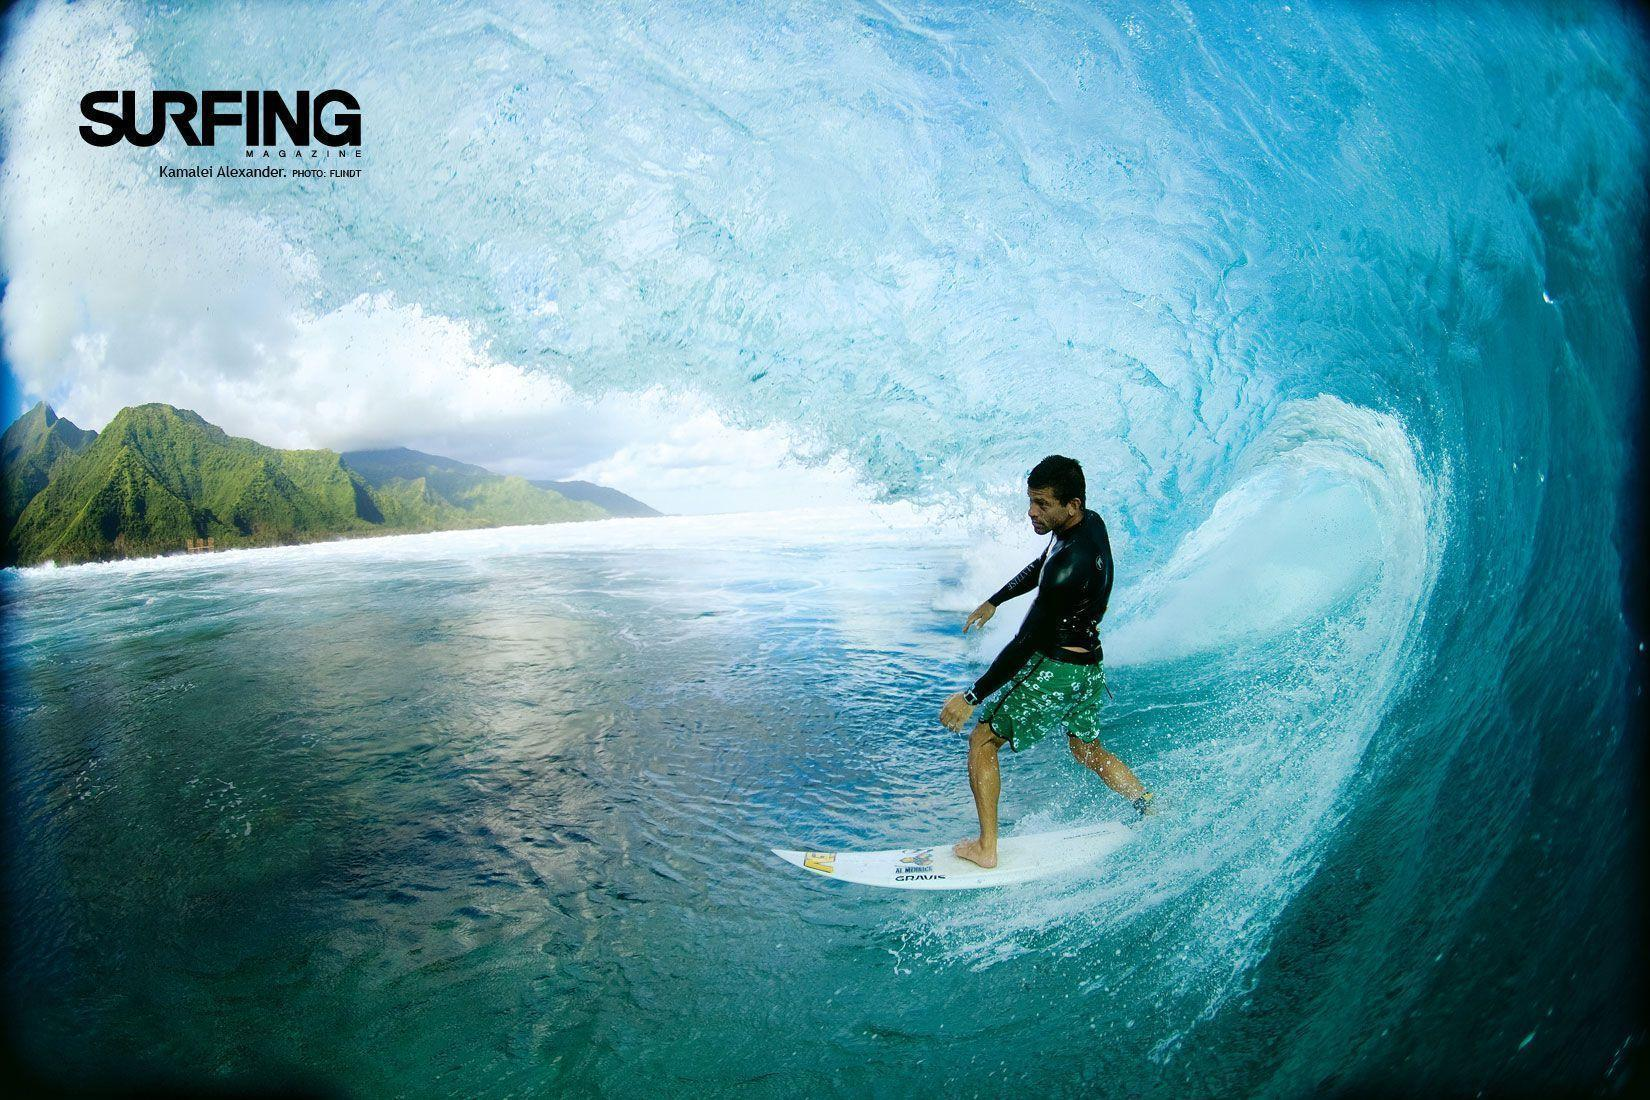 Hd Surfing Wallpaper 39555 Full HD Desktop